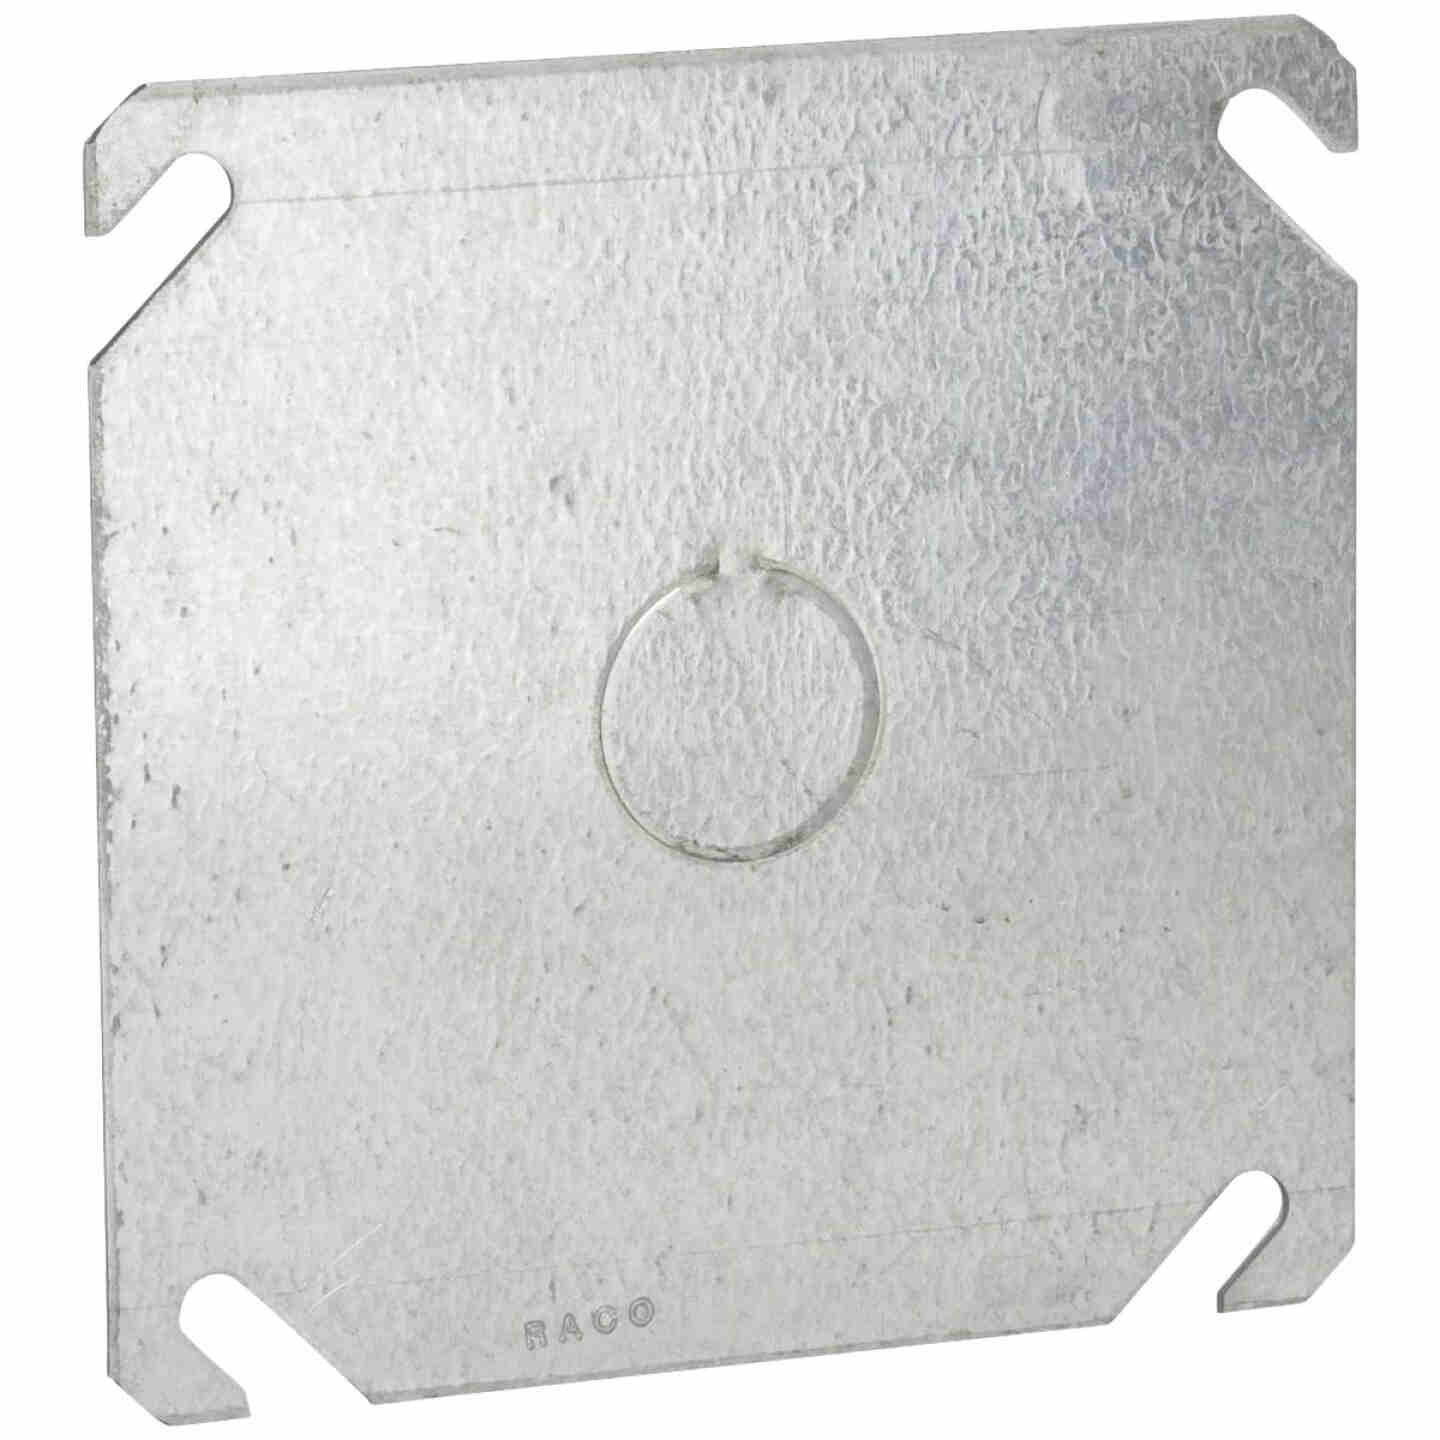 Raco 1/2 In. Knockout 4 In. x 4 In. Square Blank Cover Image 1